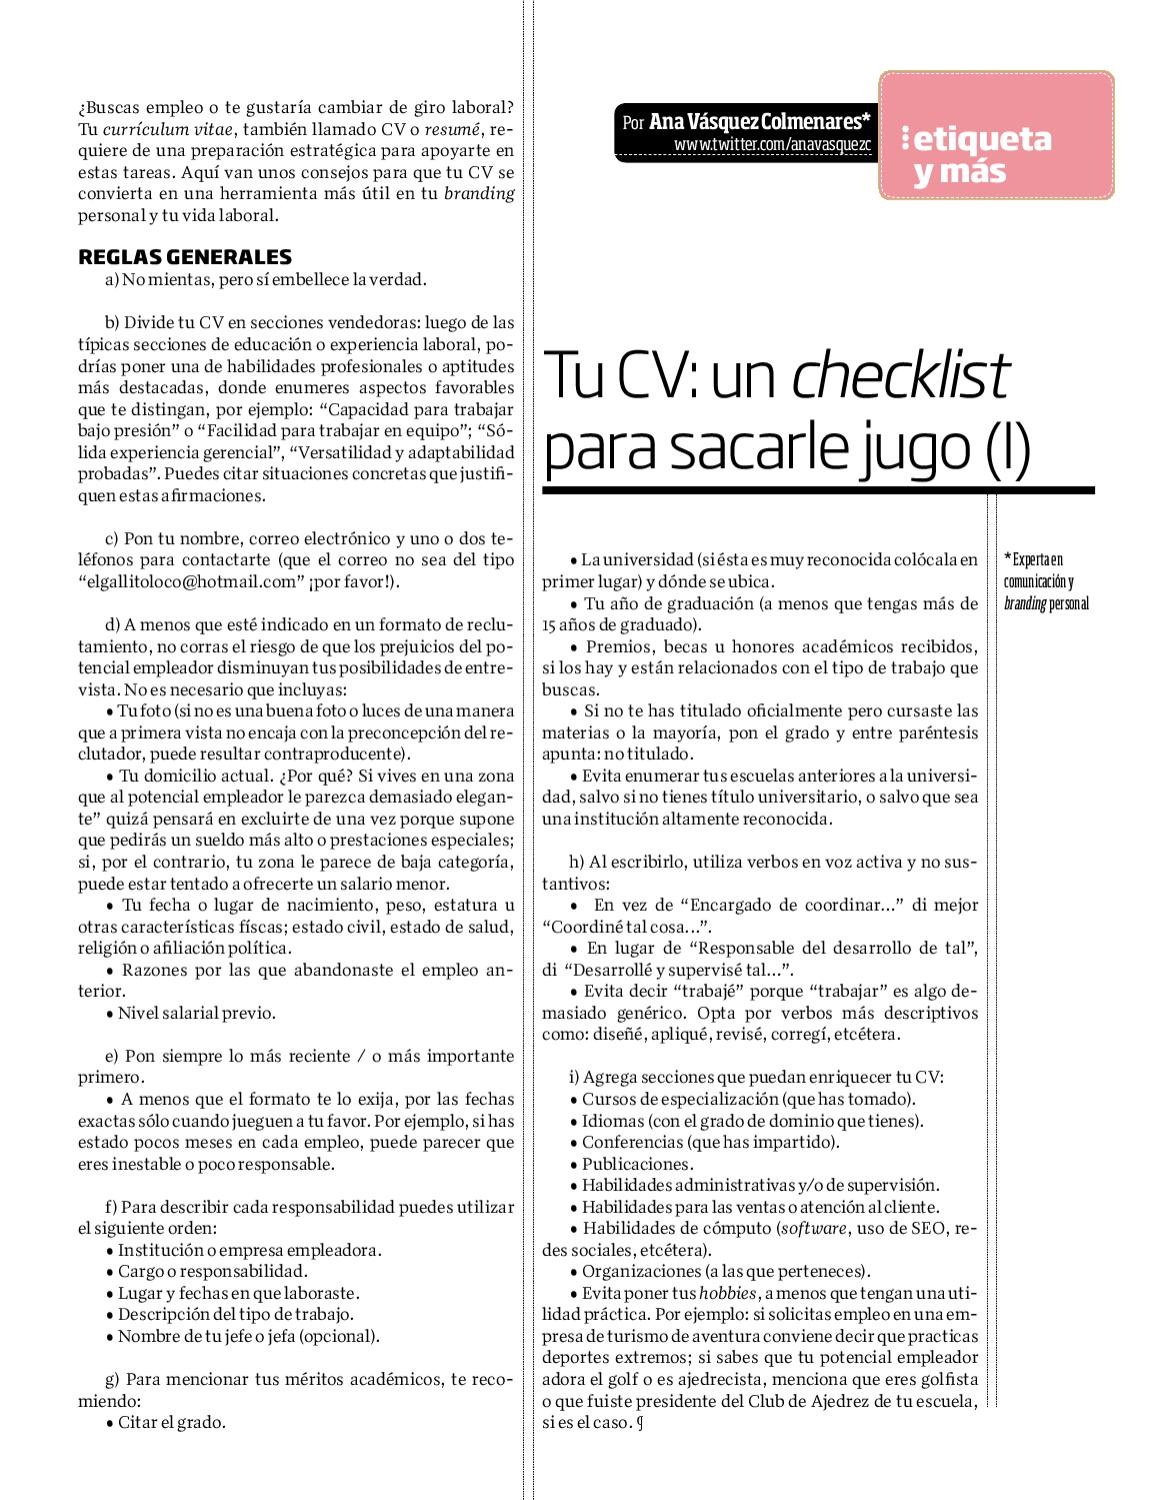 CV Checklist by javier garza - issuu